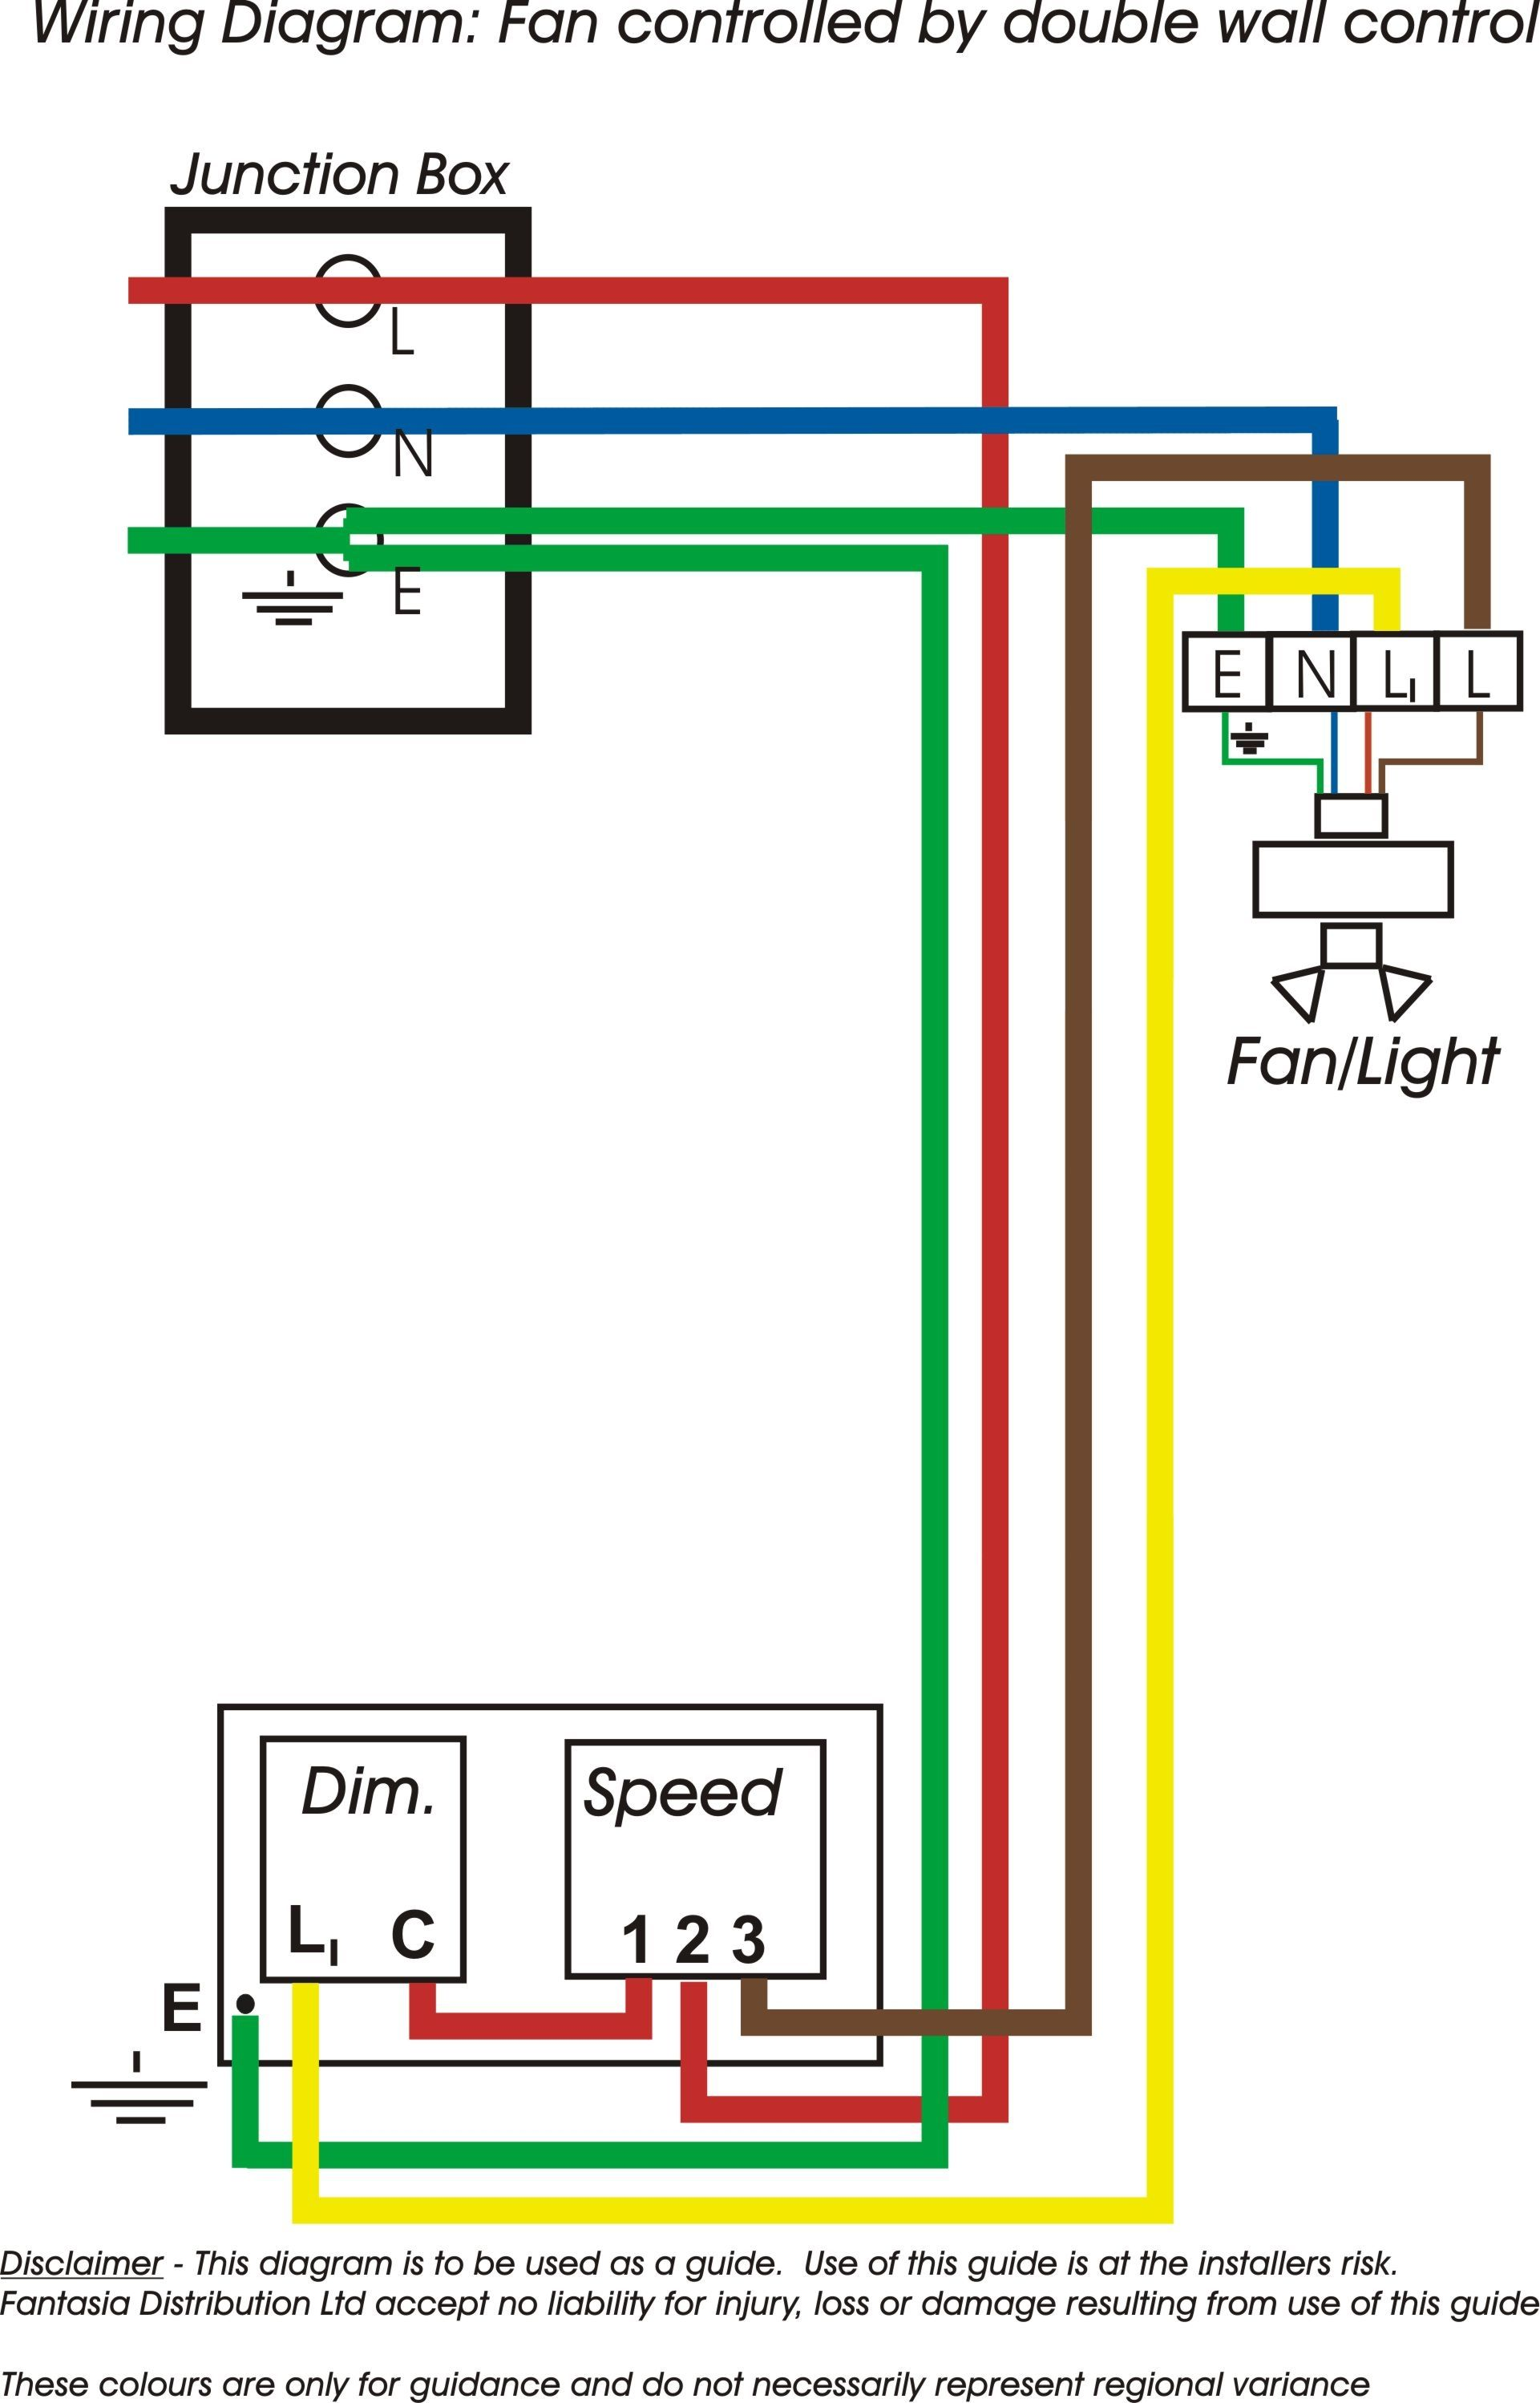 Hampton Bay Ceiling Fan Remote Wiring Diagram - 6.3.tierarztpraxis on hampton bay ceiling fan screw, hampton bay ceiling fan harbor breeze, hampton bay fan schematic diagram, hampton bay ceiling fan parts glass, hampton bay ceiling fans troubleshooting, hampton bay fan switch diagram, ceiling fan installation diagram, hampton bay fan pilot, hampton bay ventilation fan wiring, hampton bay ceiling fan sensor, hampton bay ceiling fans home depot, hampton bay ceiling fan brochure, hampton bay ceiling fan receiver replacement, hampton bay ceiling fan replacement globes, hampton bay lighting wiring diagrams, hampton bay ceiling fans with lights, hampton bay ceiling fan change bulb, 3-pin computer fan wiring diagram, hunter fan remote wiring diagram, hampton bay ceiling fan lighting,